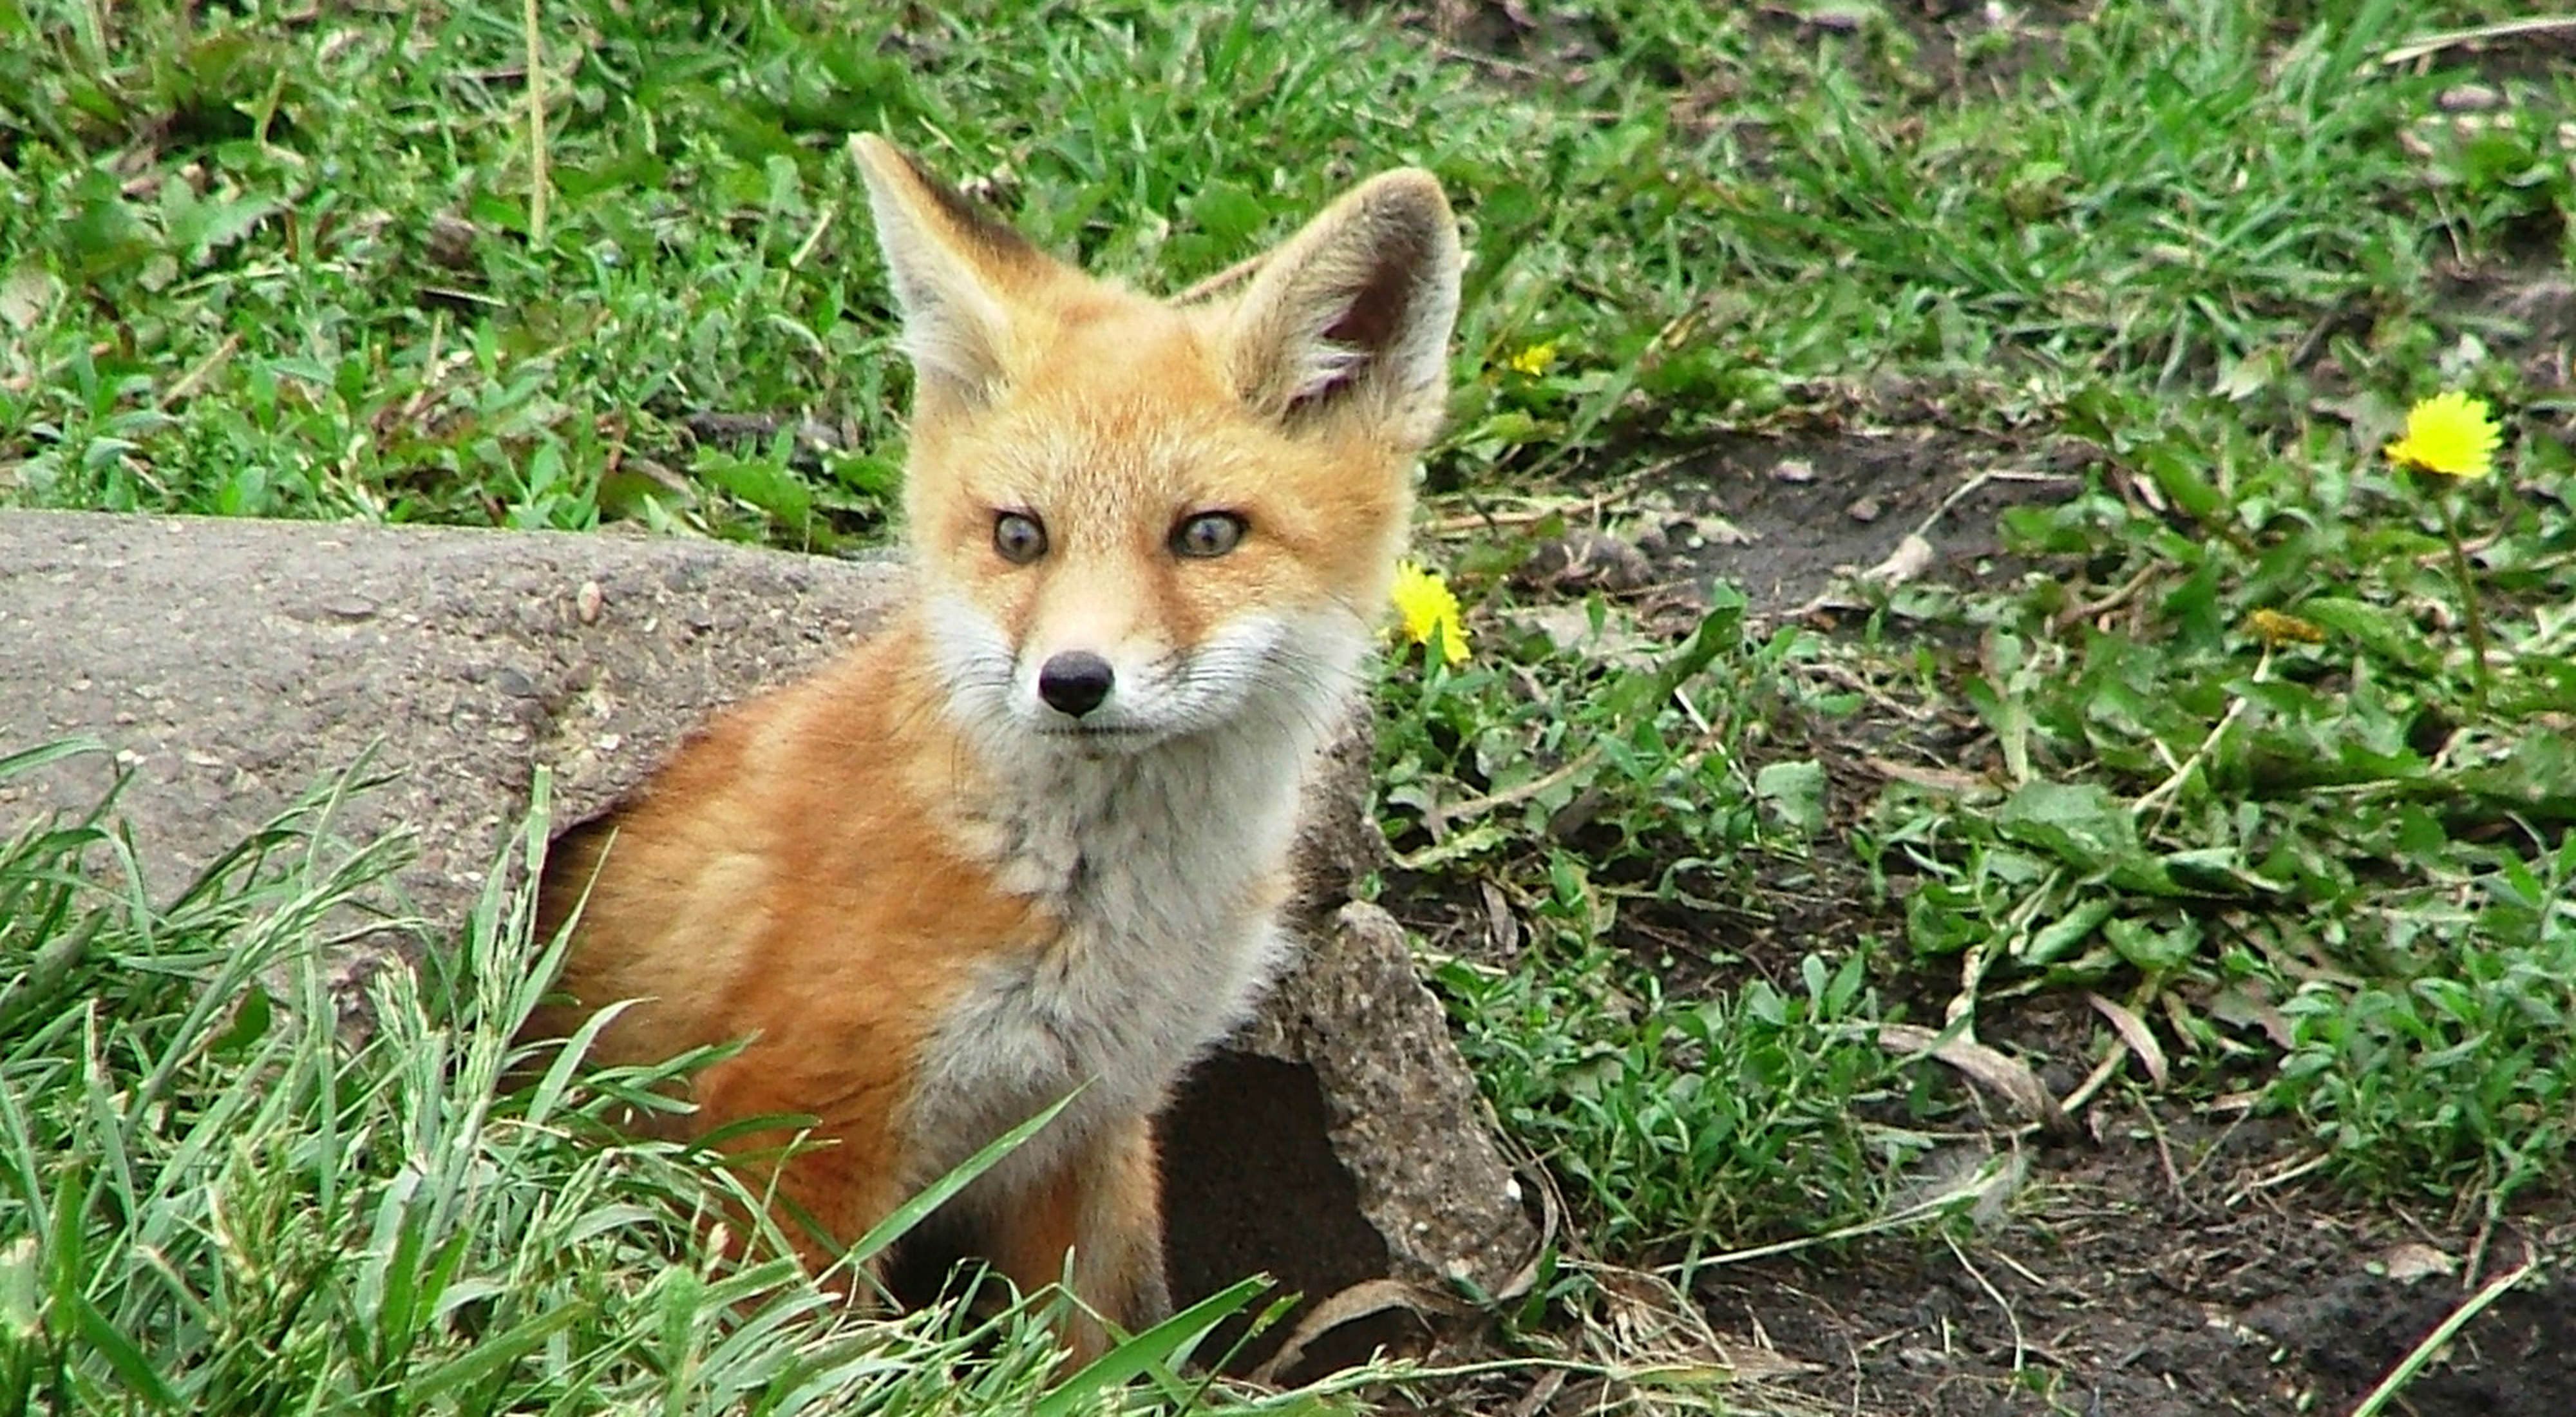 Fox kit at Franklin demonstration farm in the Mackinaw River watershed, Lexington, Illinois.